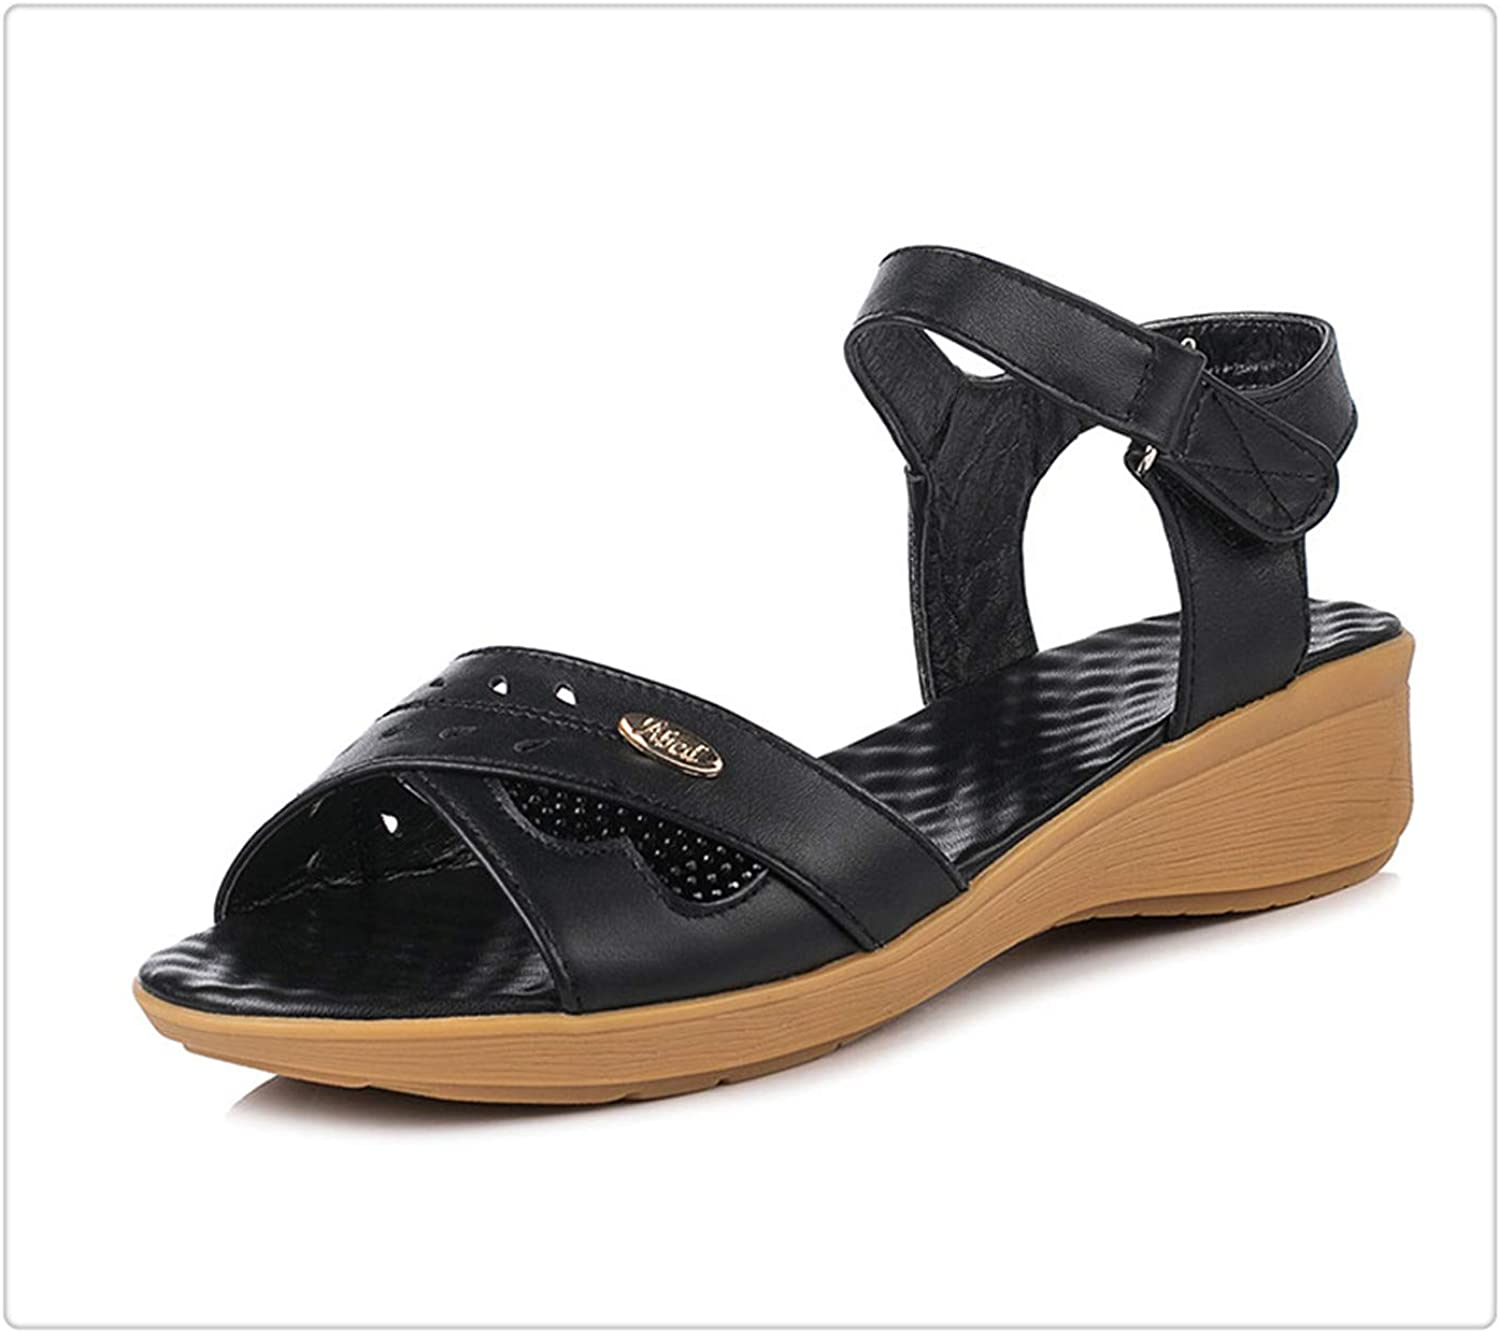 HAHUTG& Genuine Leather Summer Sandals Woman Wedge Flat Casual peep Toe Large Size